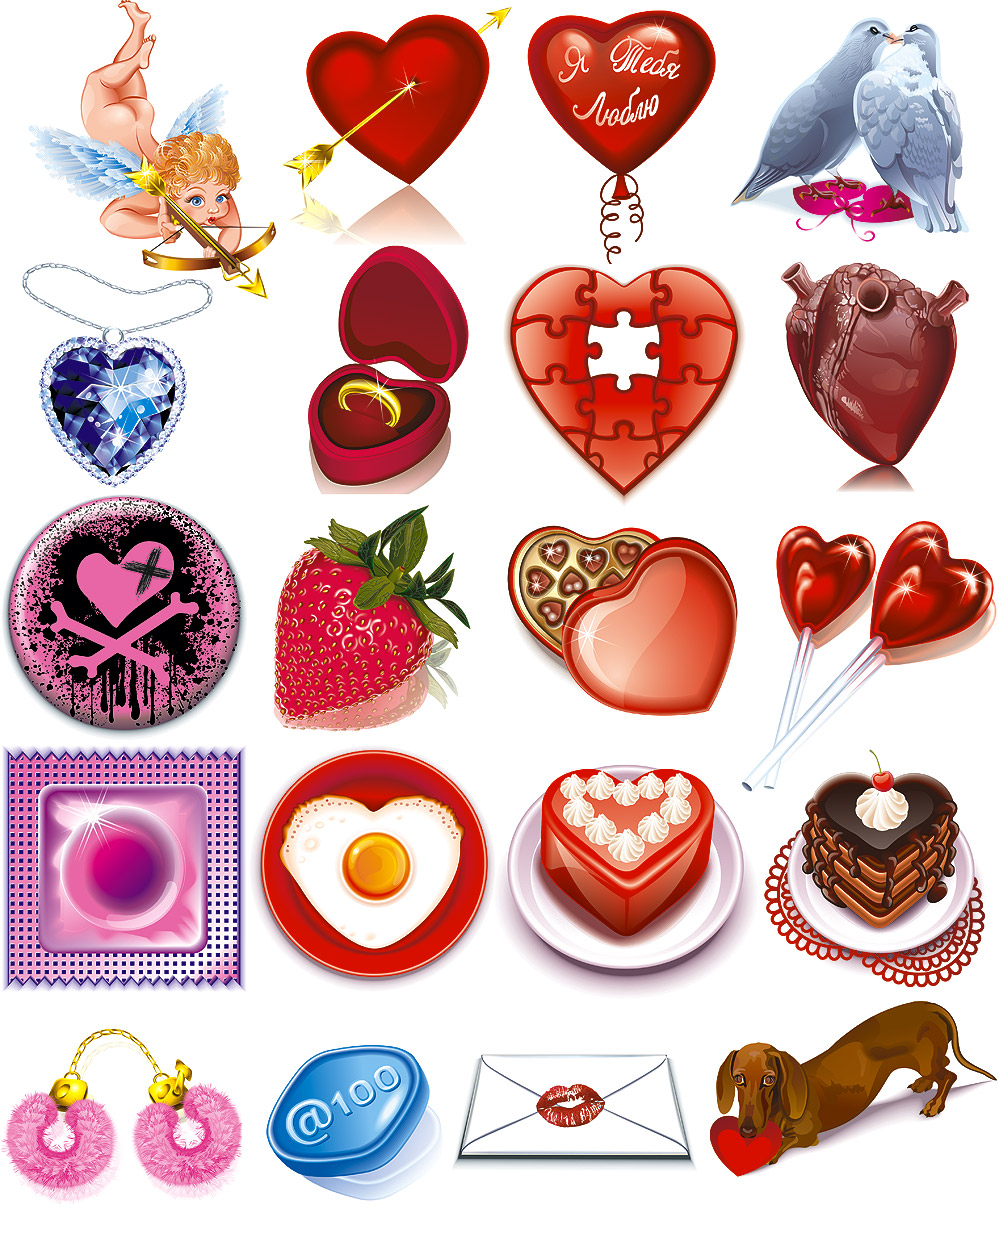 Creative ideas for valentine 39 s day gifts gift and for Valentines day creative gifts